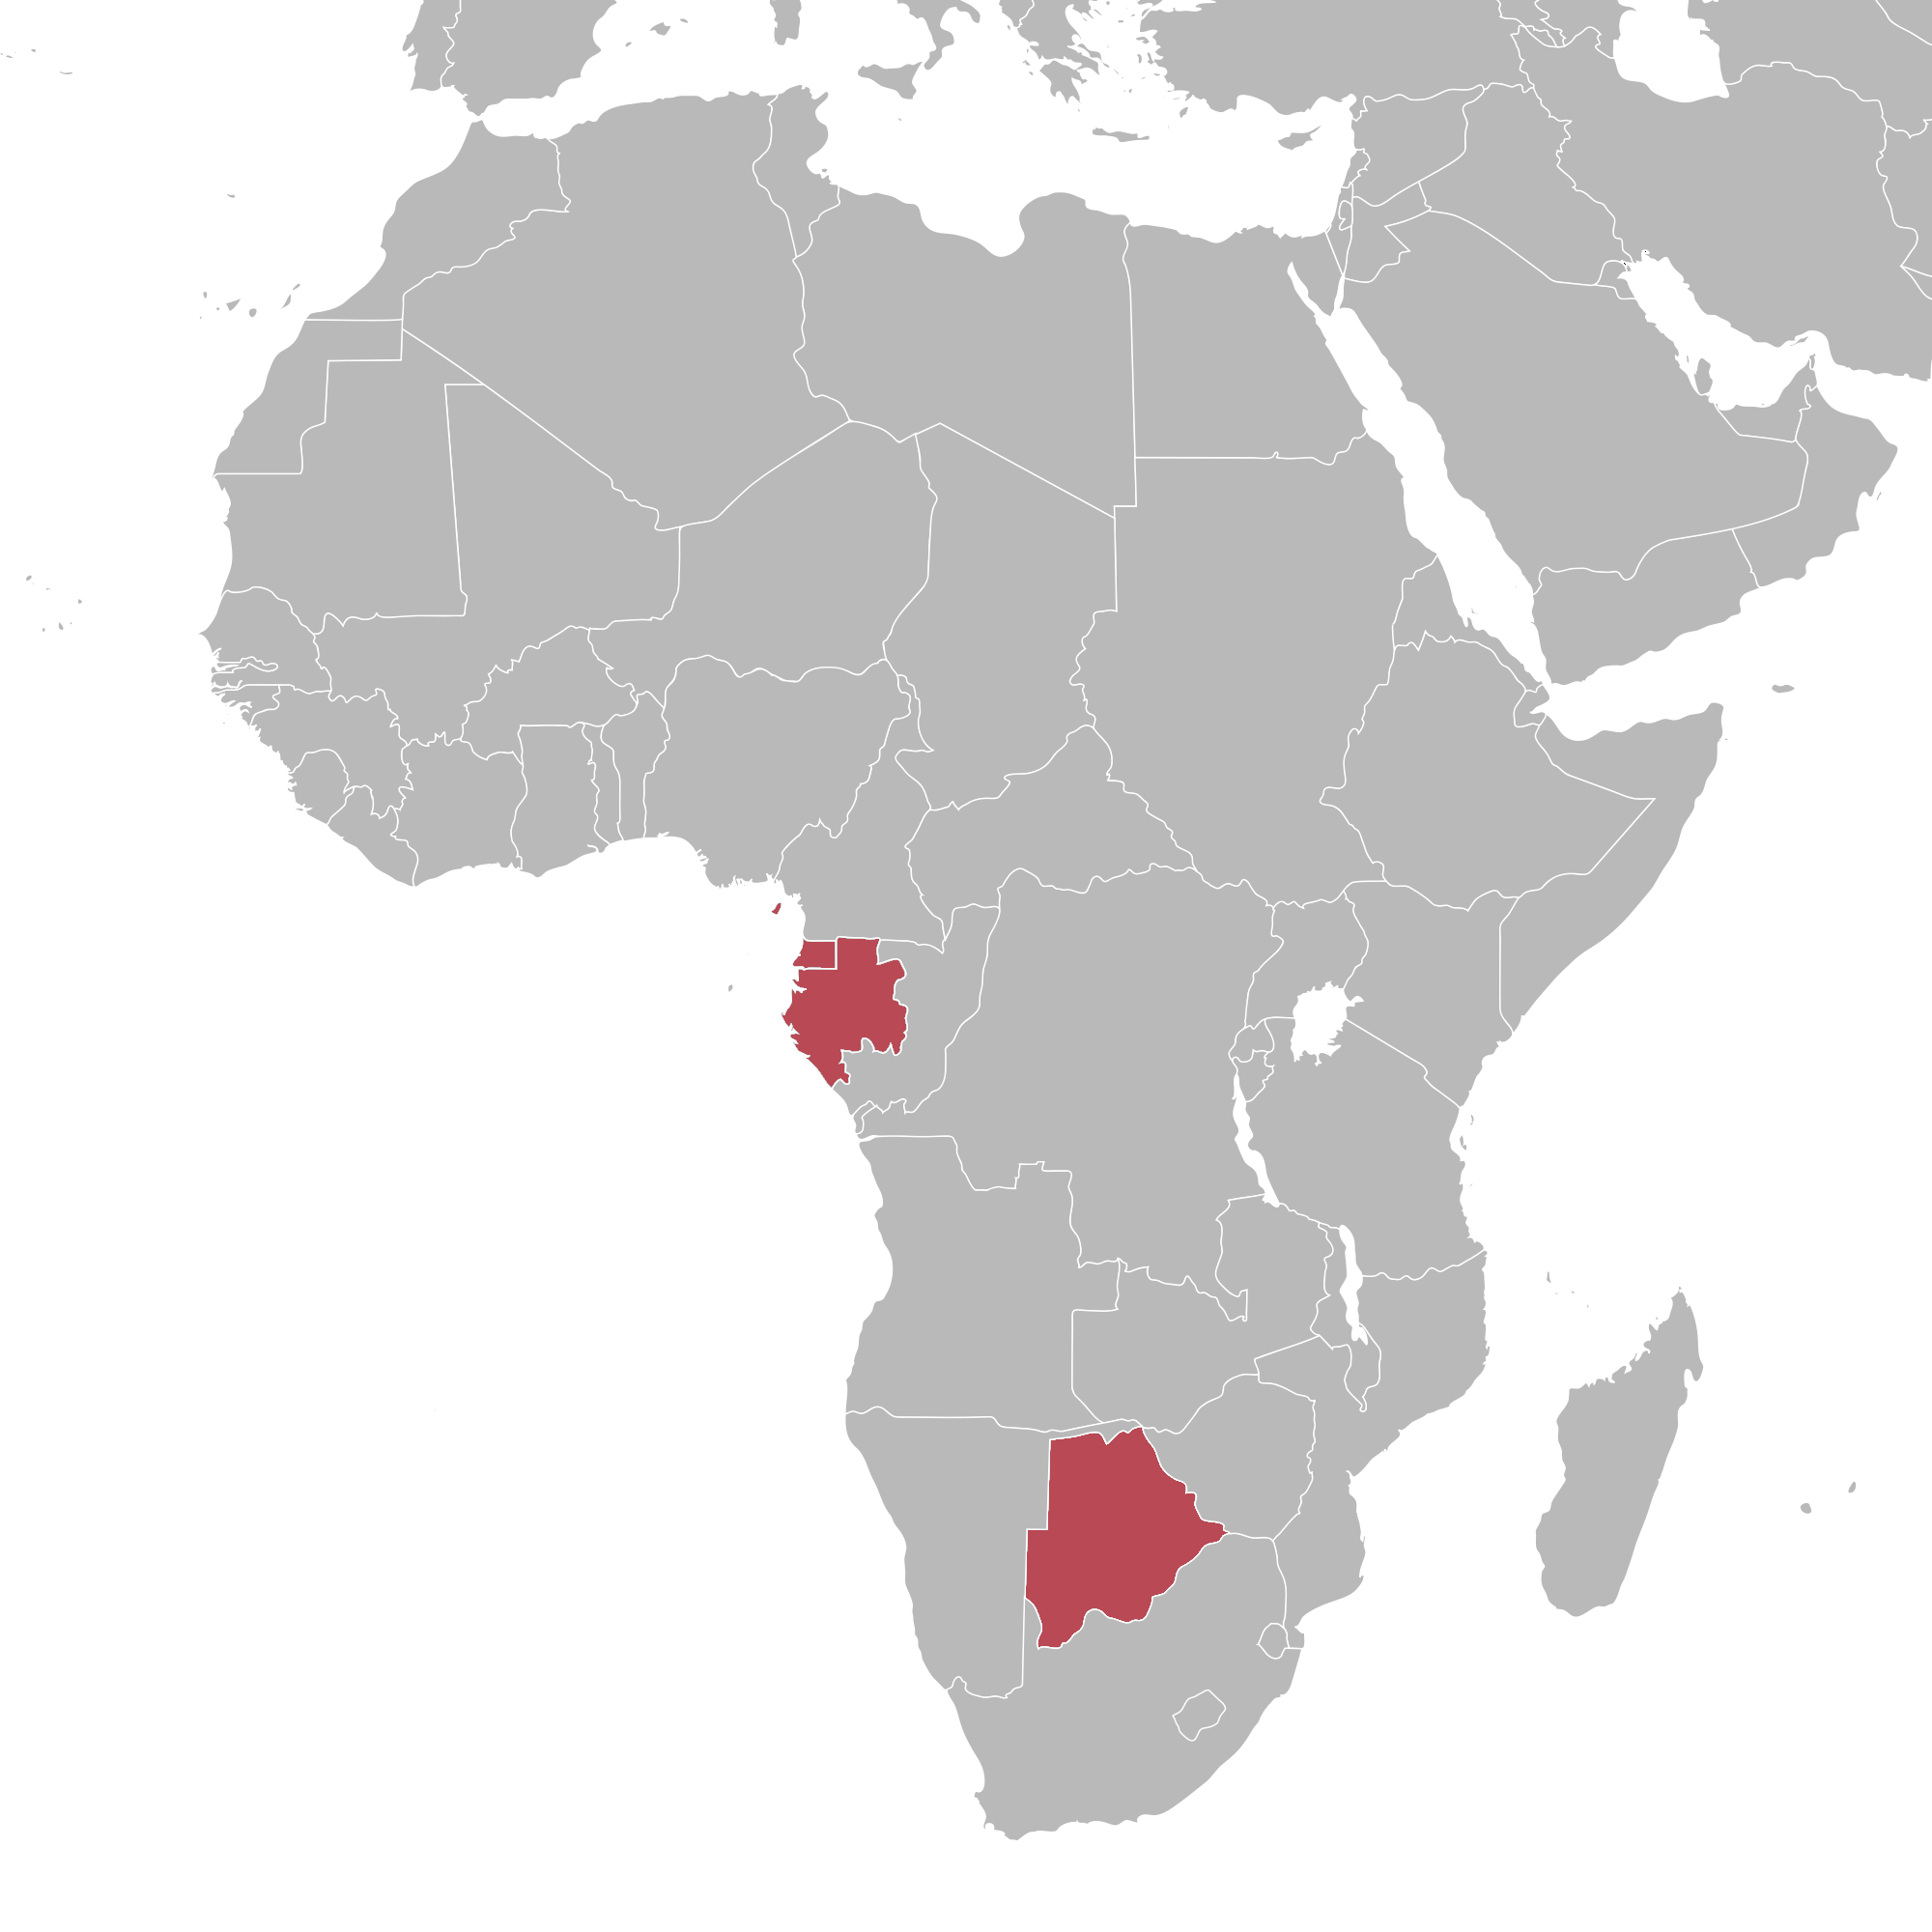 2000 African Cup of Nations